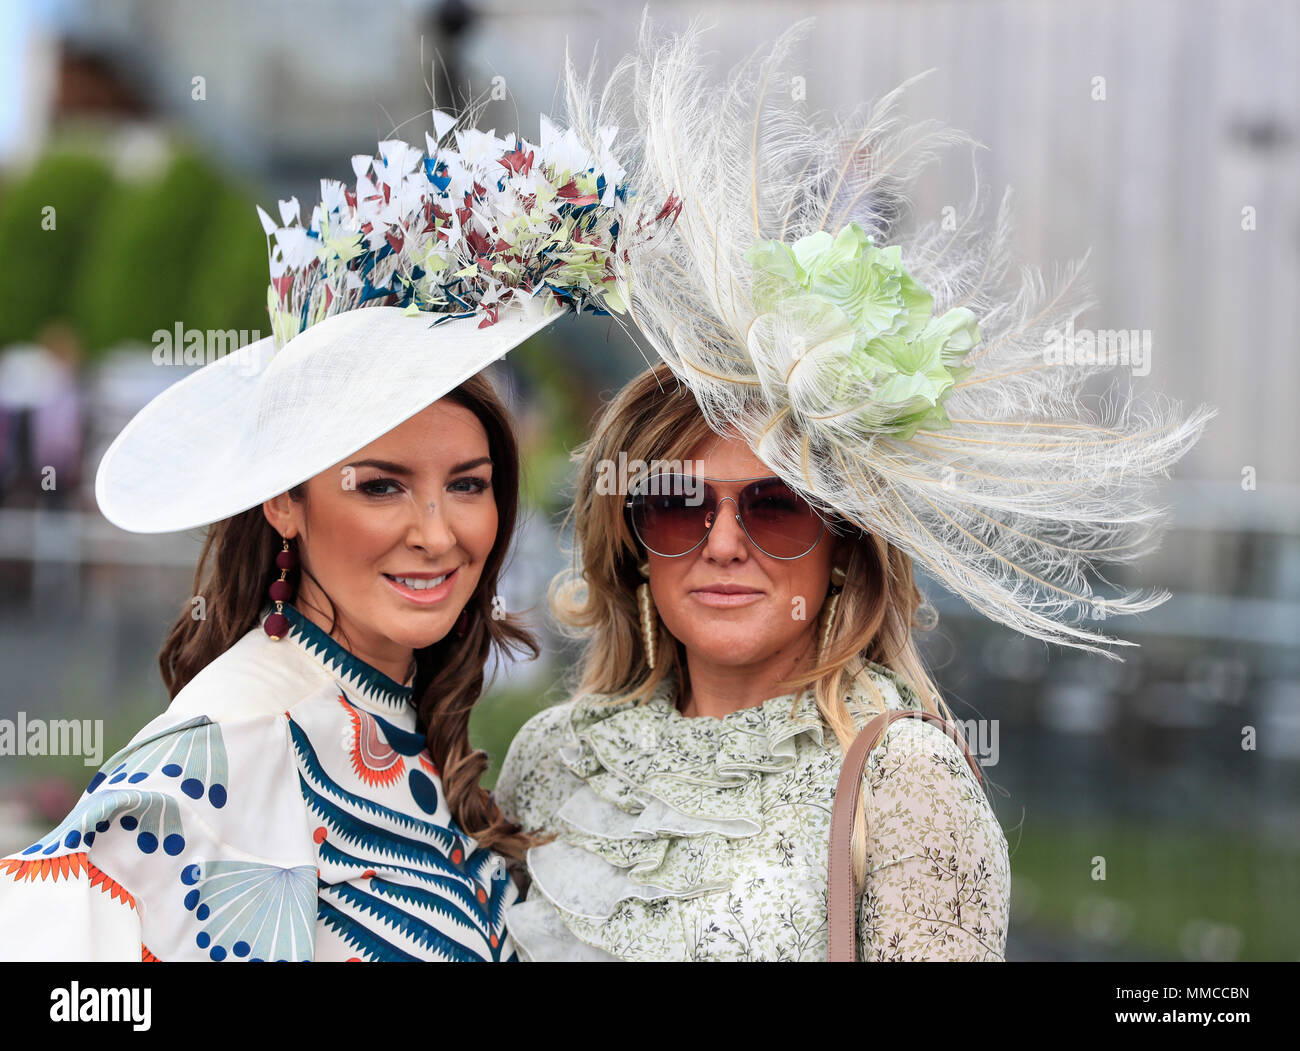 Chester Racecourse, Chester, UK. 10th May, 2018. The Boodles May Festival, Ladies Day; Ladies enjoying the day at Chester races Credit: Action Plus Sports/Alamy Live News - Stock Image